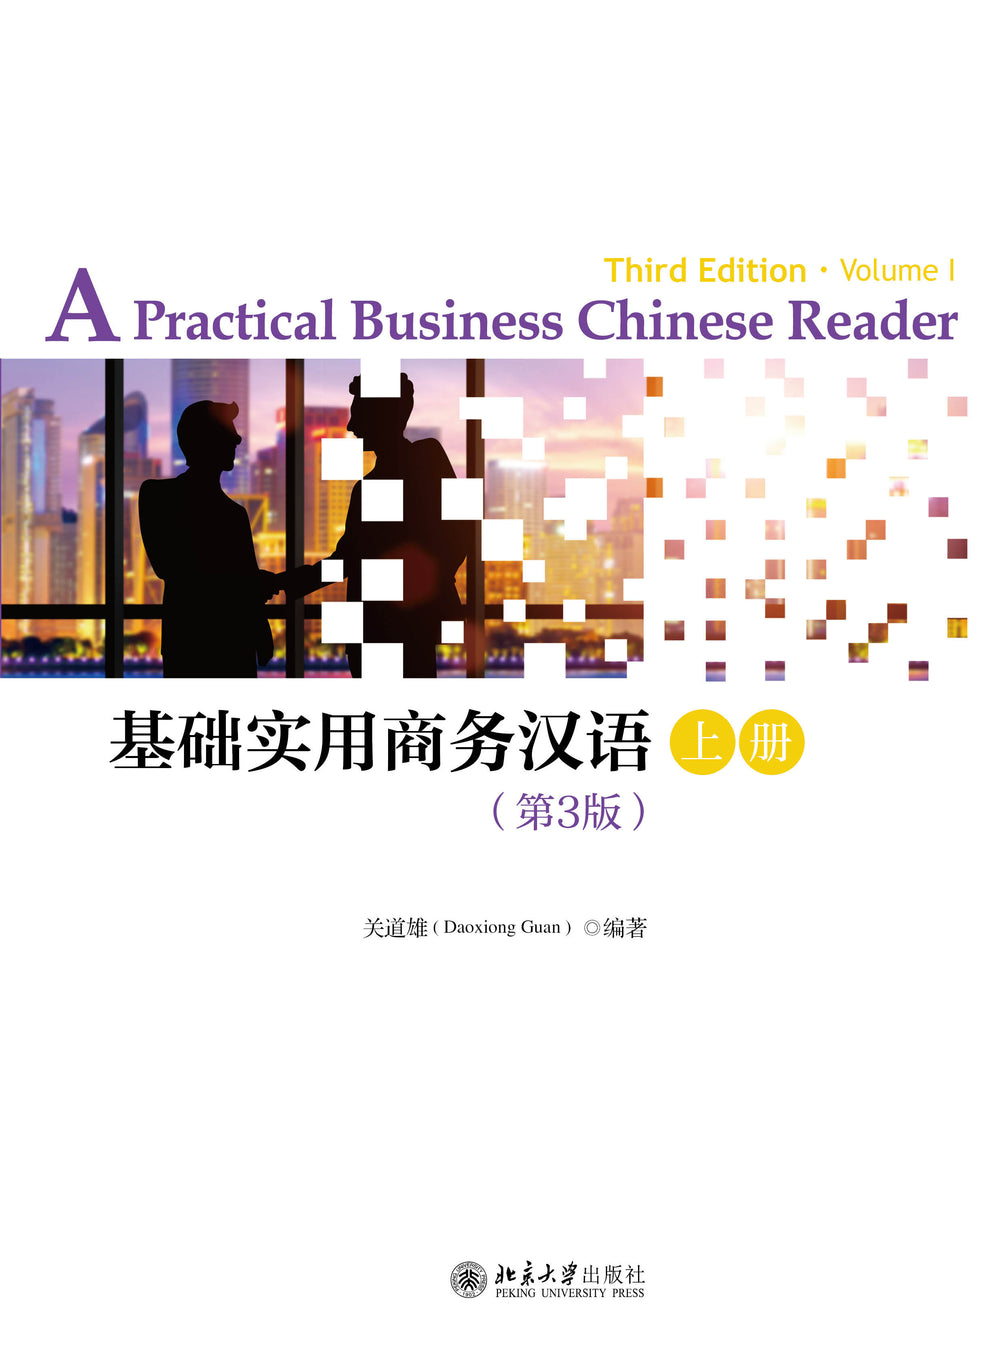 A Practical Business Chinese Reader (3rd Edition) 基础实用商务汉语(第3版)